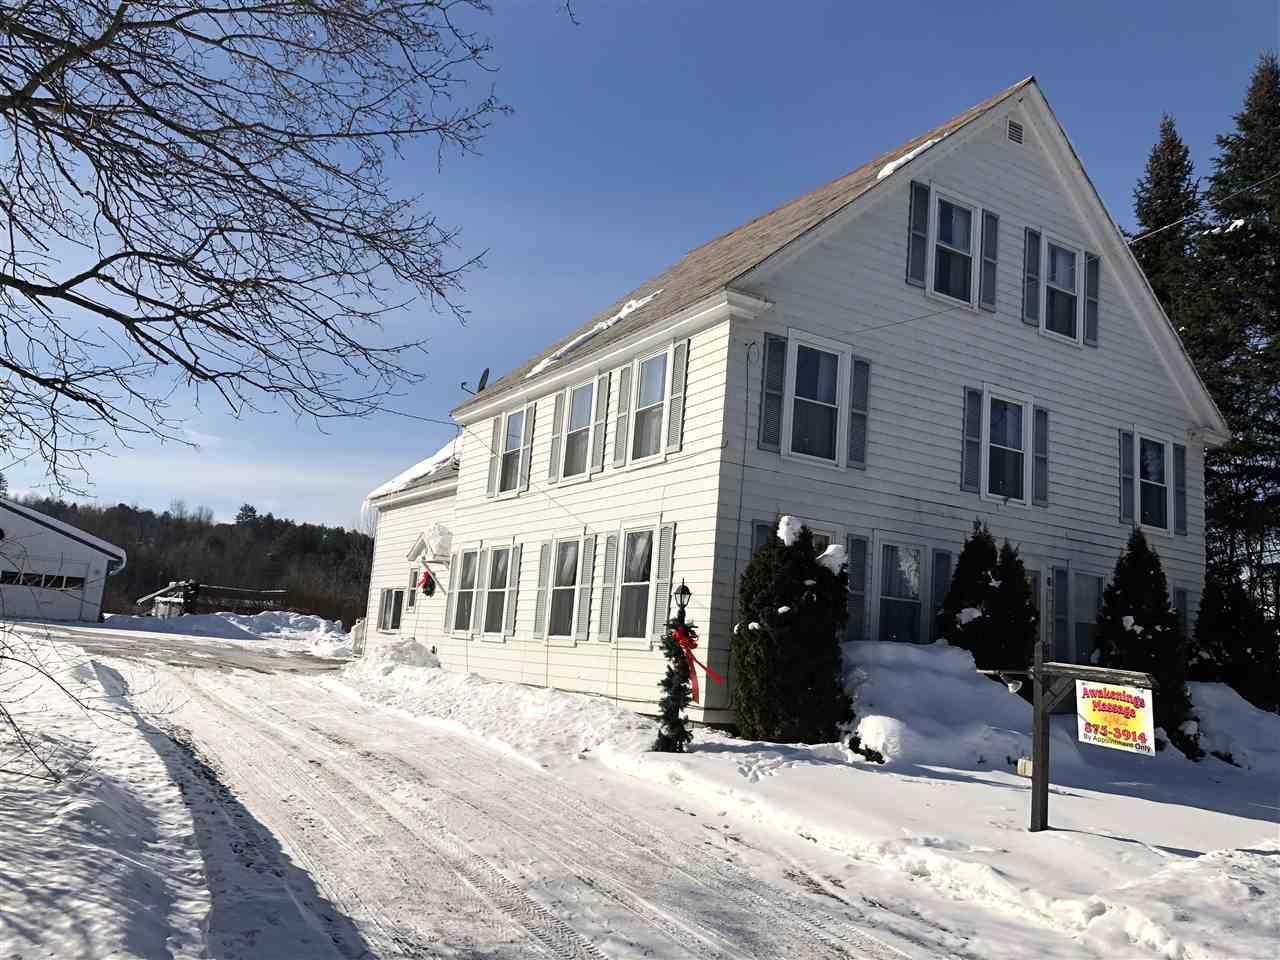 87 North Street Road, Chester, VT 05143